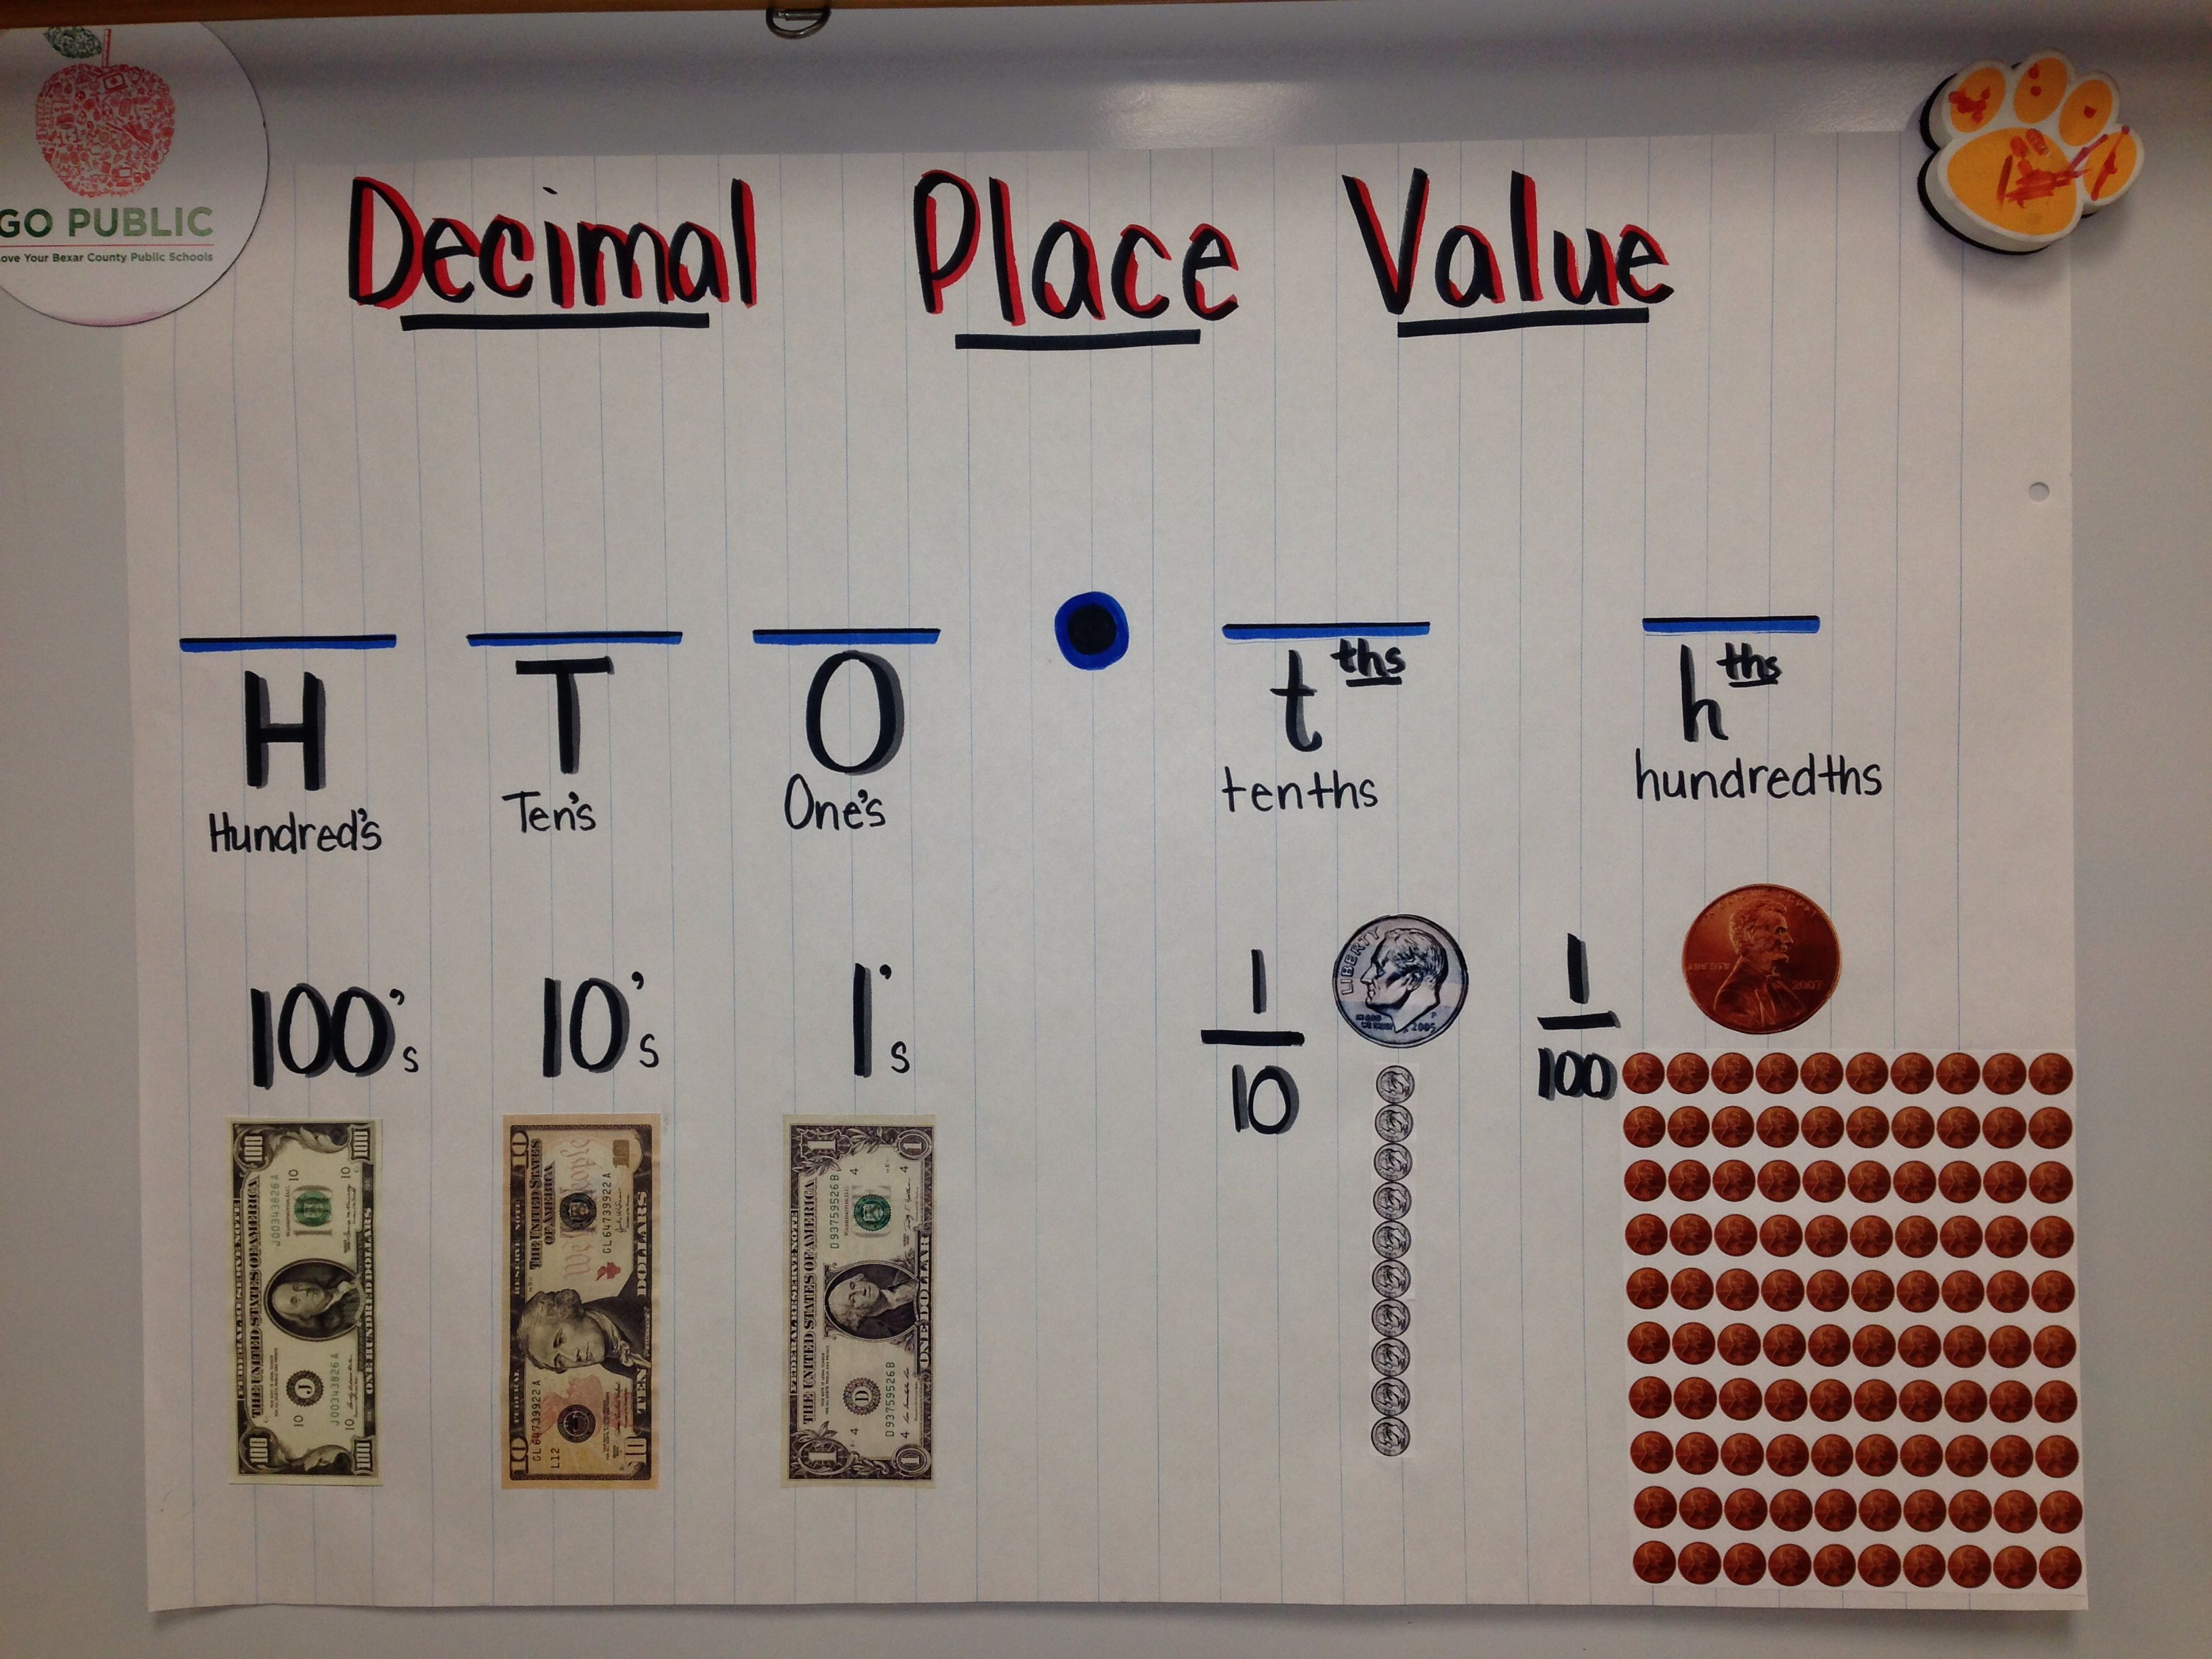 Decimal place value resources teaching ideas decimal places decimal place value resources teaching ideas nvjuhfo Image collections